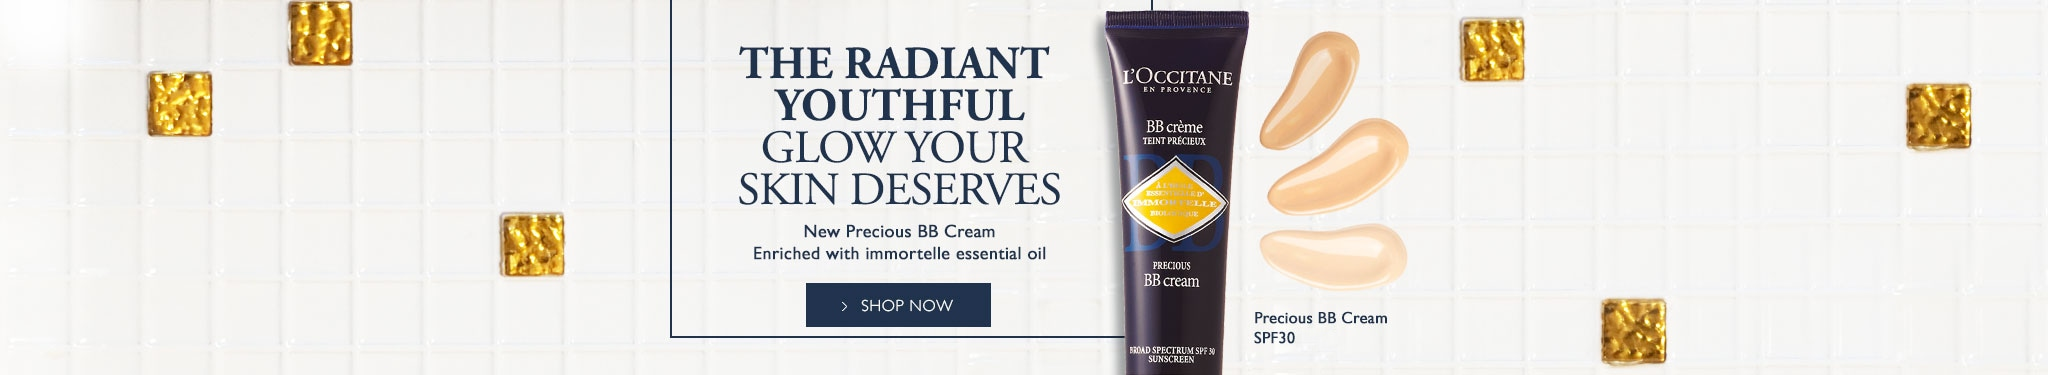 The Radiant Youthful Glow Your Skin Deserves. New Precious BB Cream Enriched with Immortelle Essential Oil